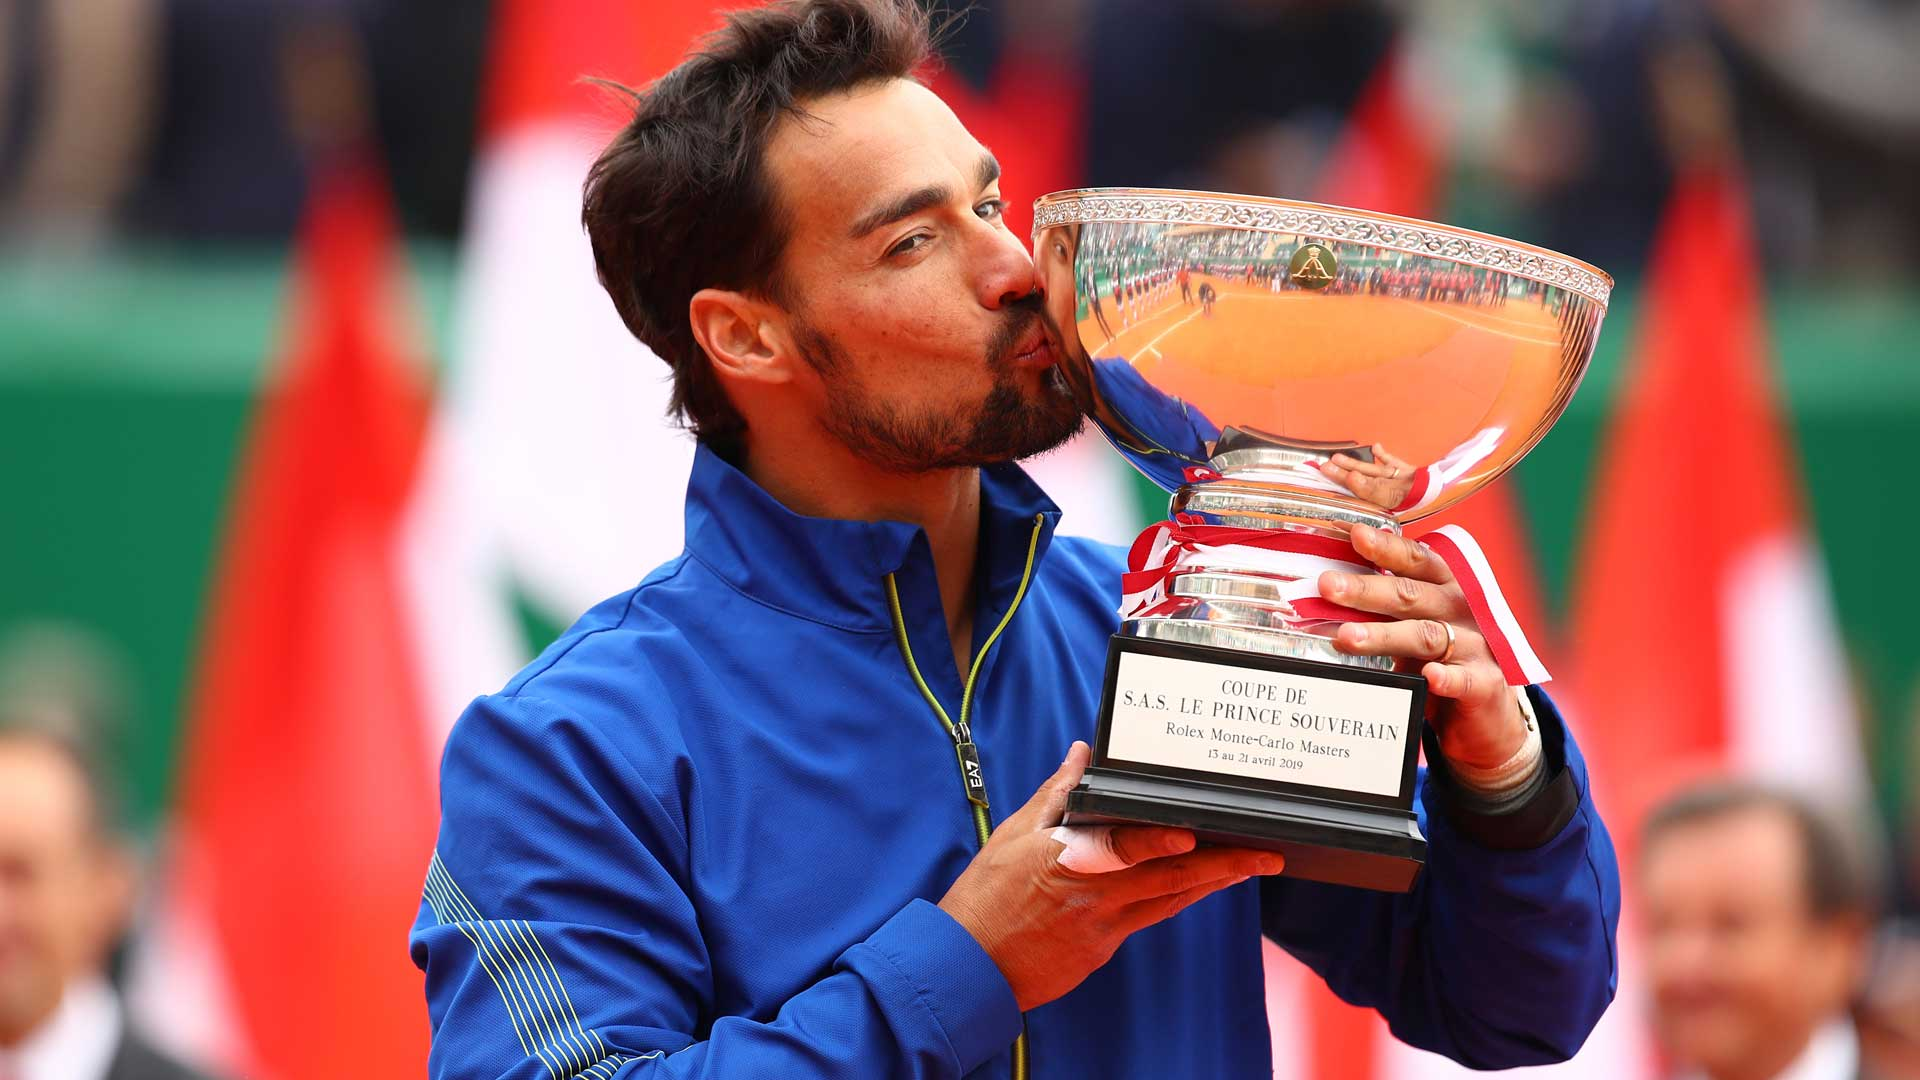 Fabio Fognini holds the 2019 Rolex Monte-Carlo Masters trophy